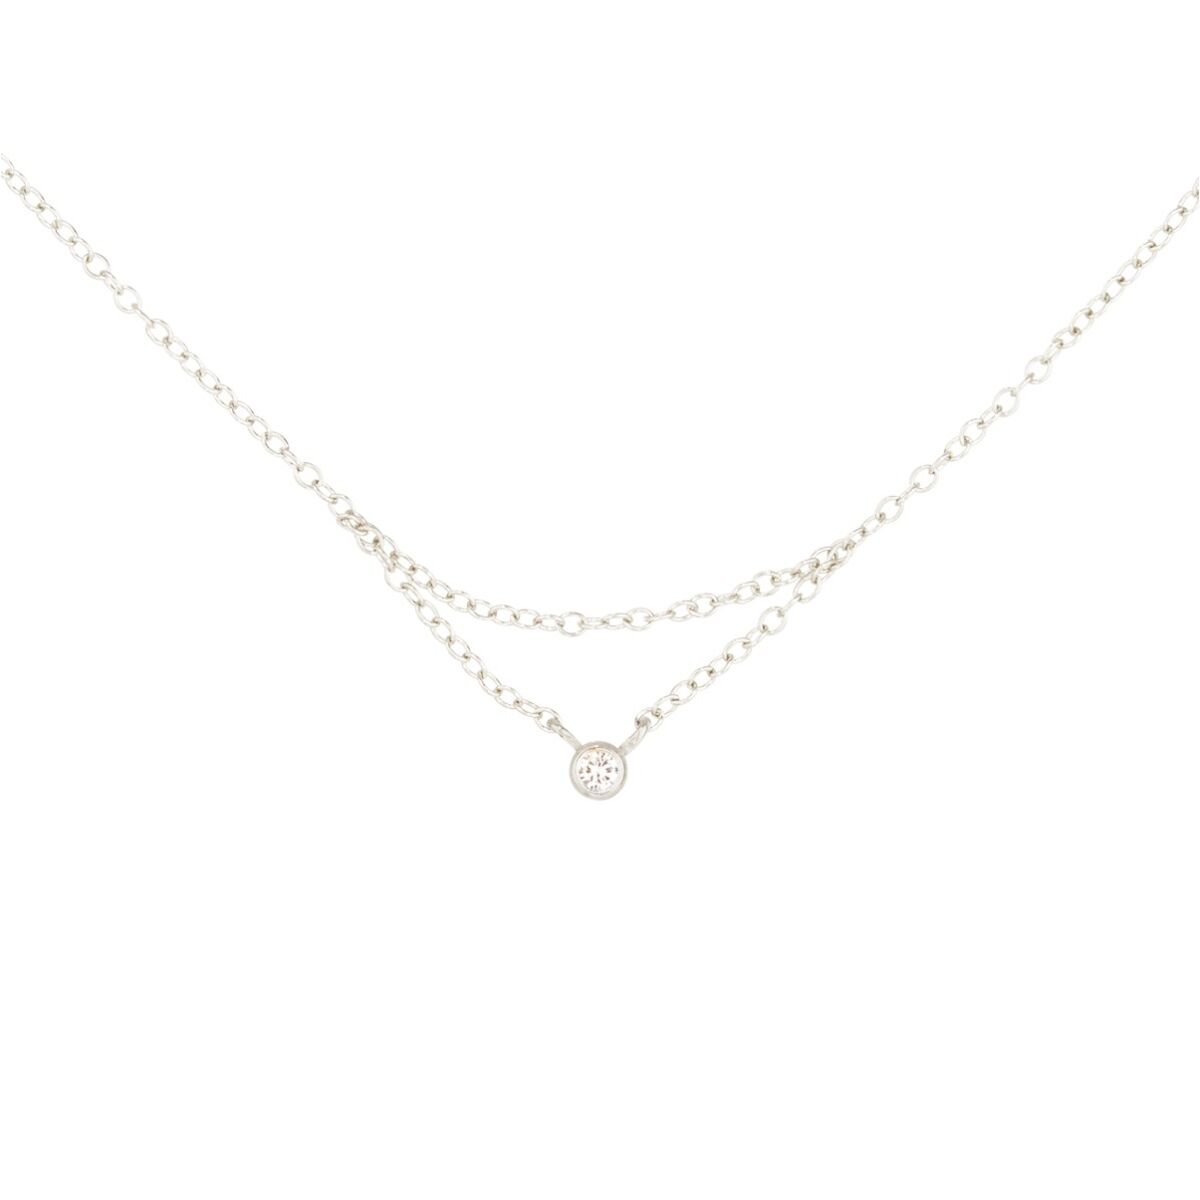 Chained to My Heart Necklace, White Gold image